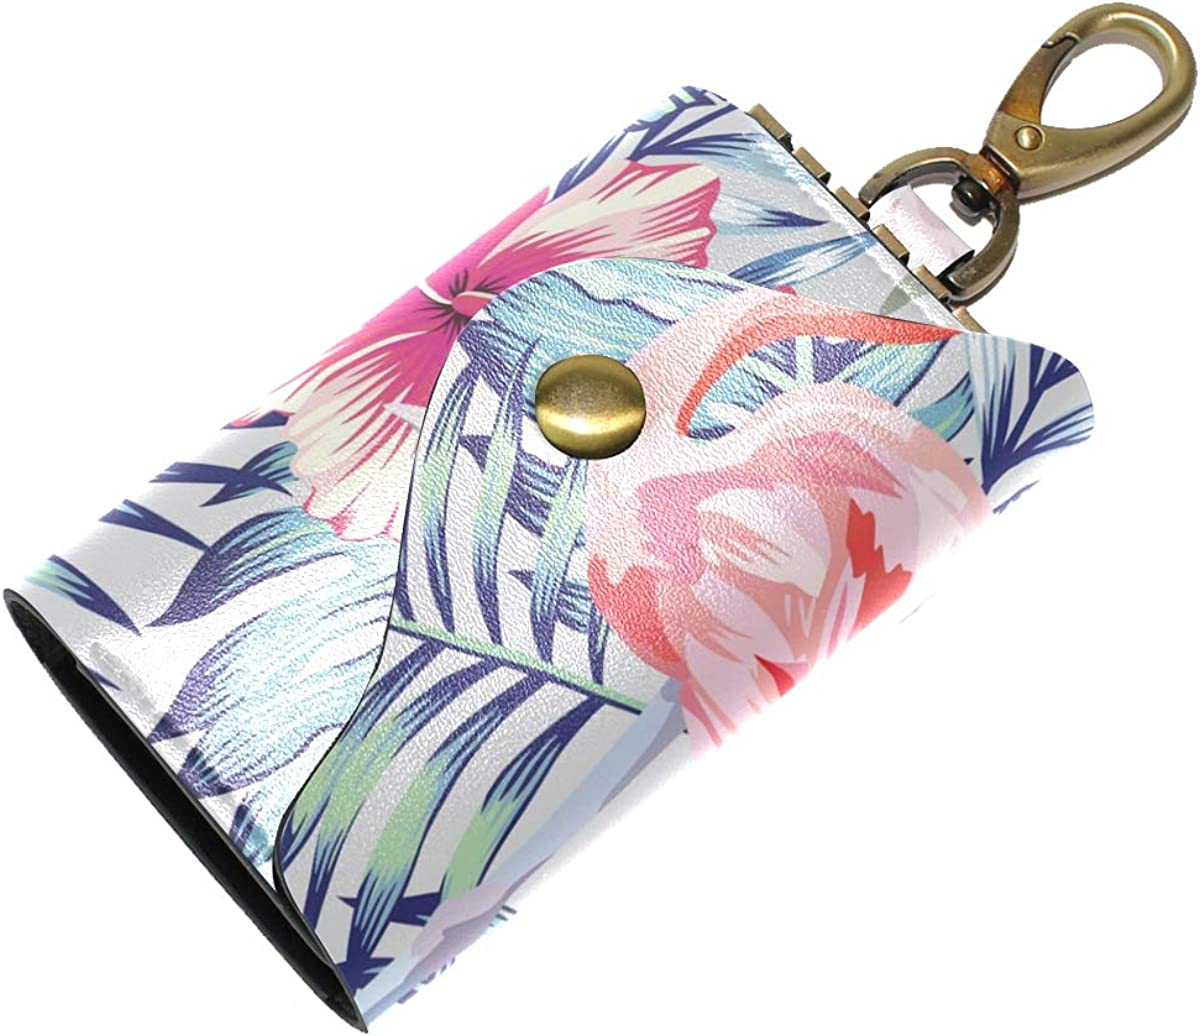 KEAKIA Orchid Hibiscus Flamingo Parrot Pattern Leather Key Case Wallets Tri-fold Key Holder Keychains with 6 Hooks 2 Slot Snap Closure for Men Women